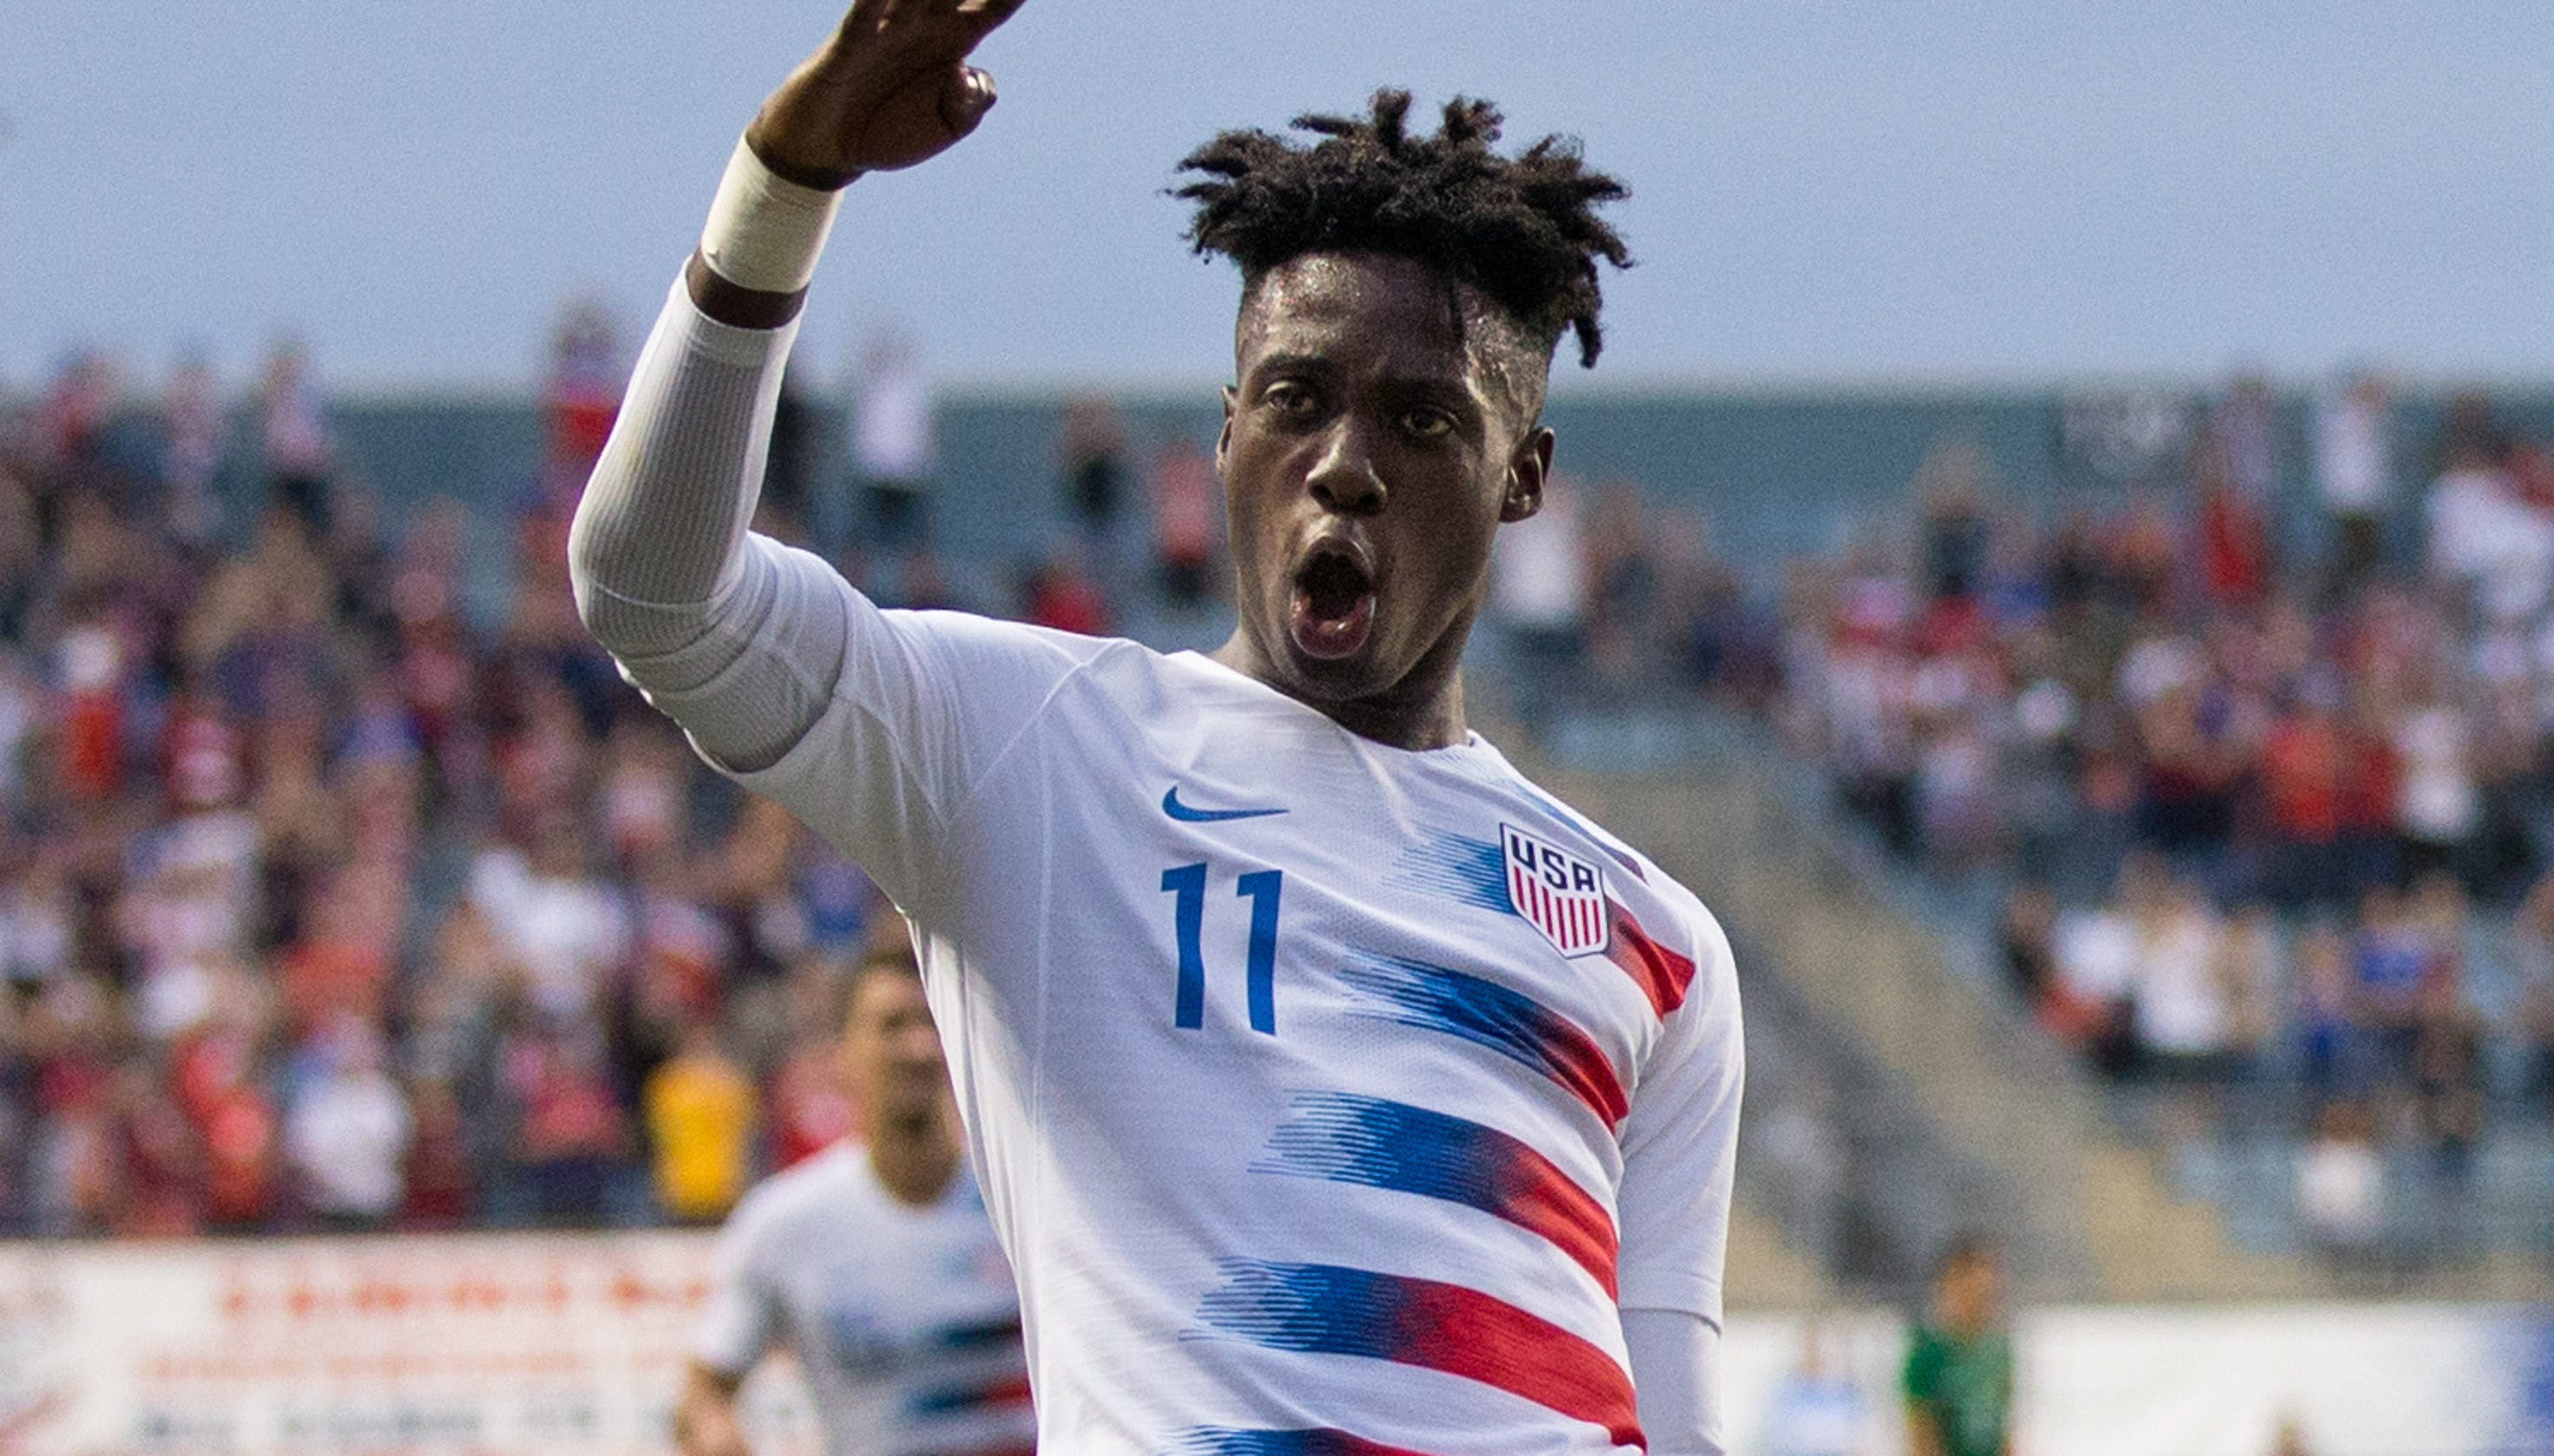 083f6de8648 U.S. Men s National Team vs. Mexico  5 things to know about Tuesday s match